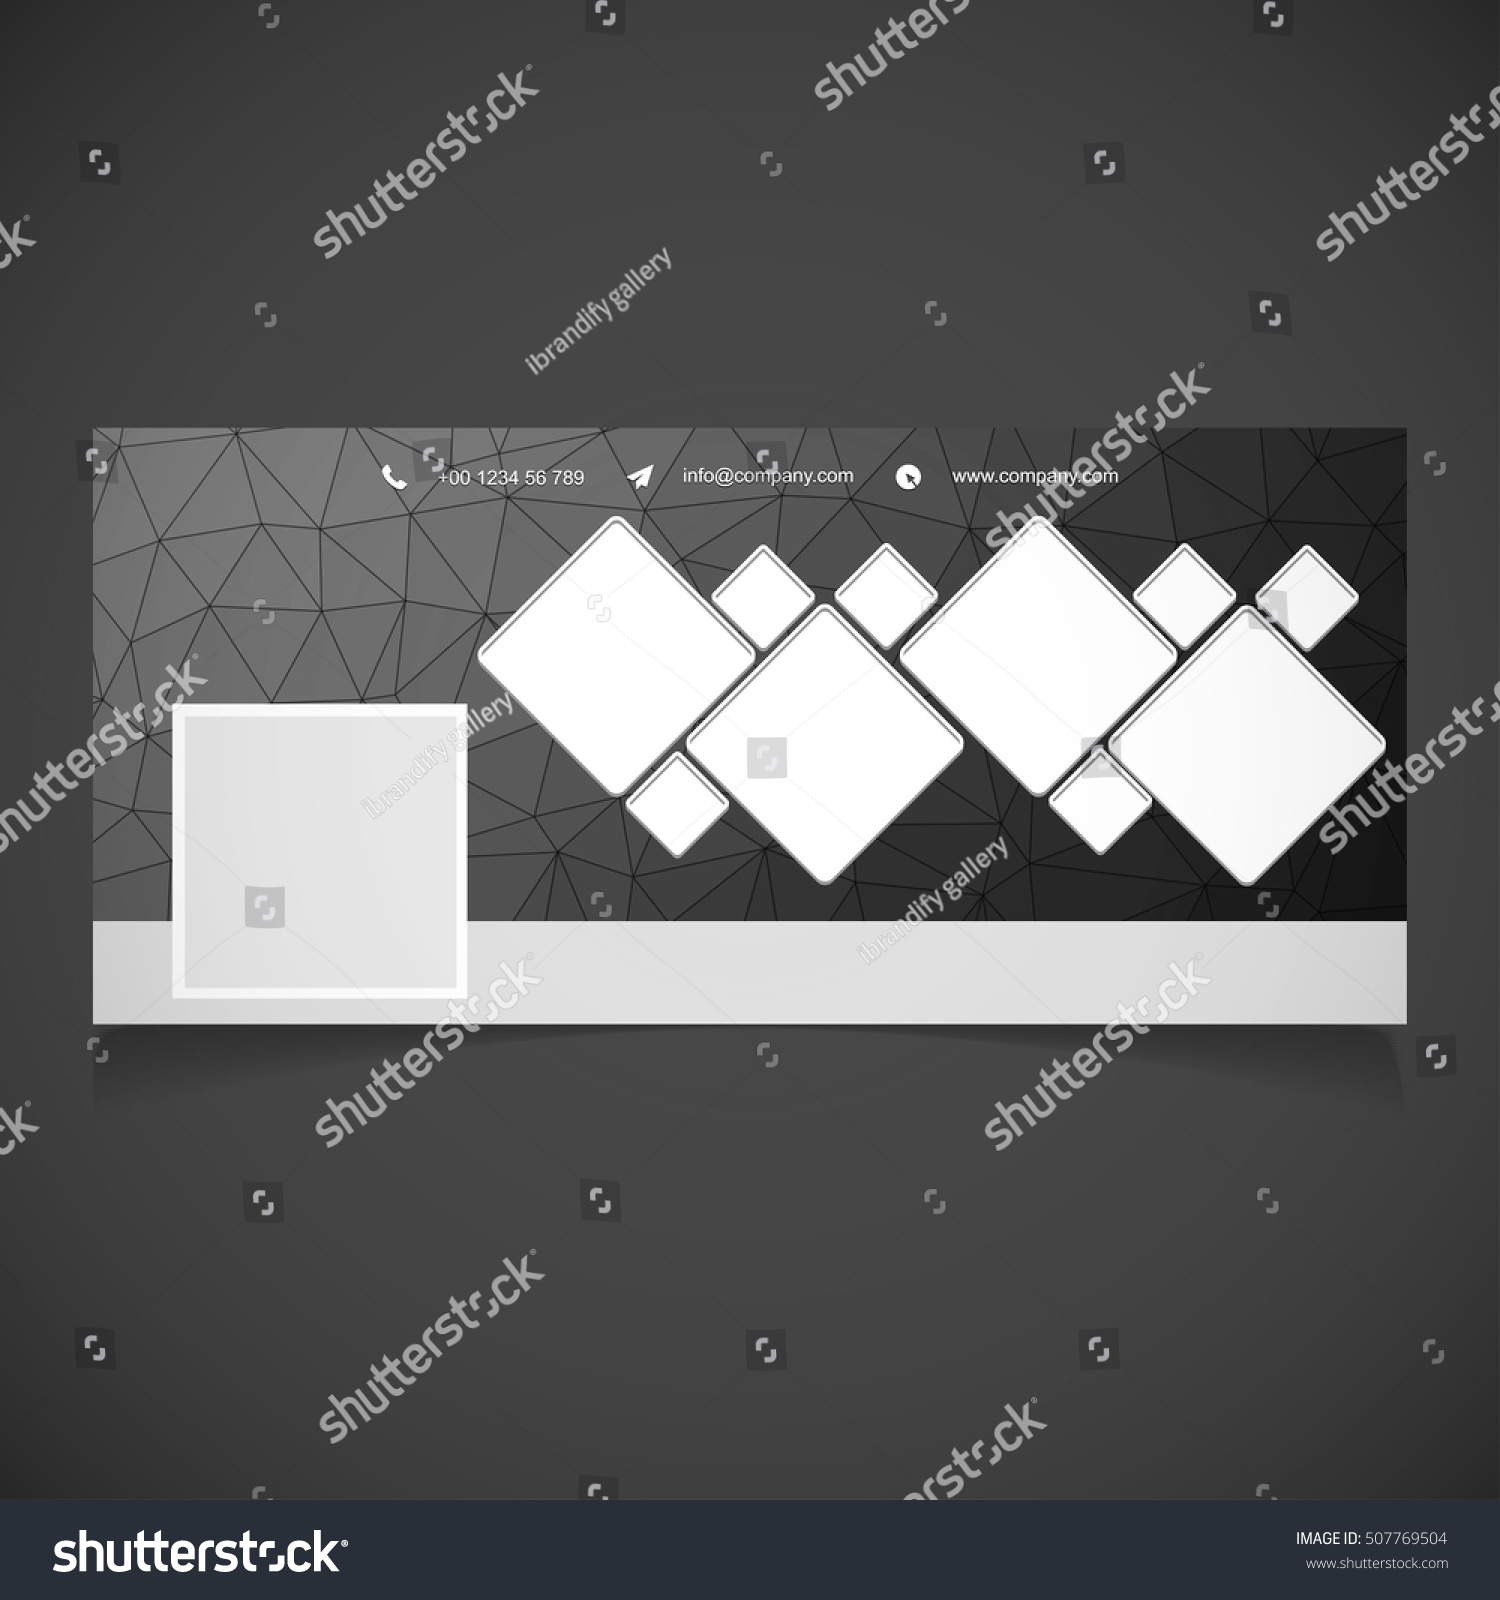 Creative Black Background Photography Banner Template Stock Vector